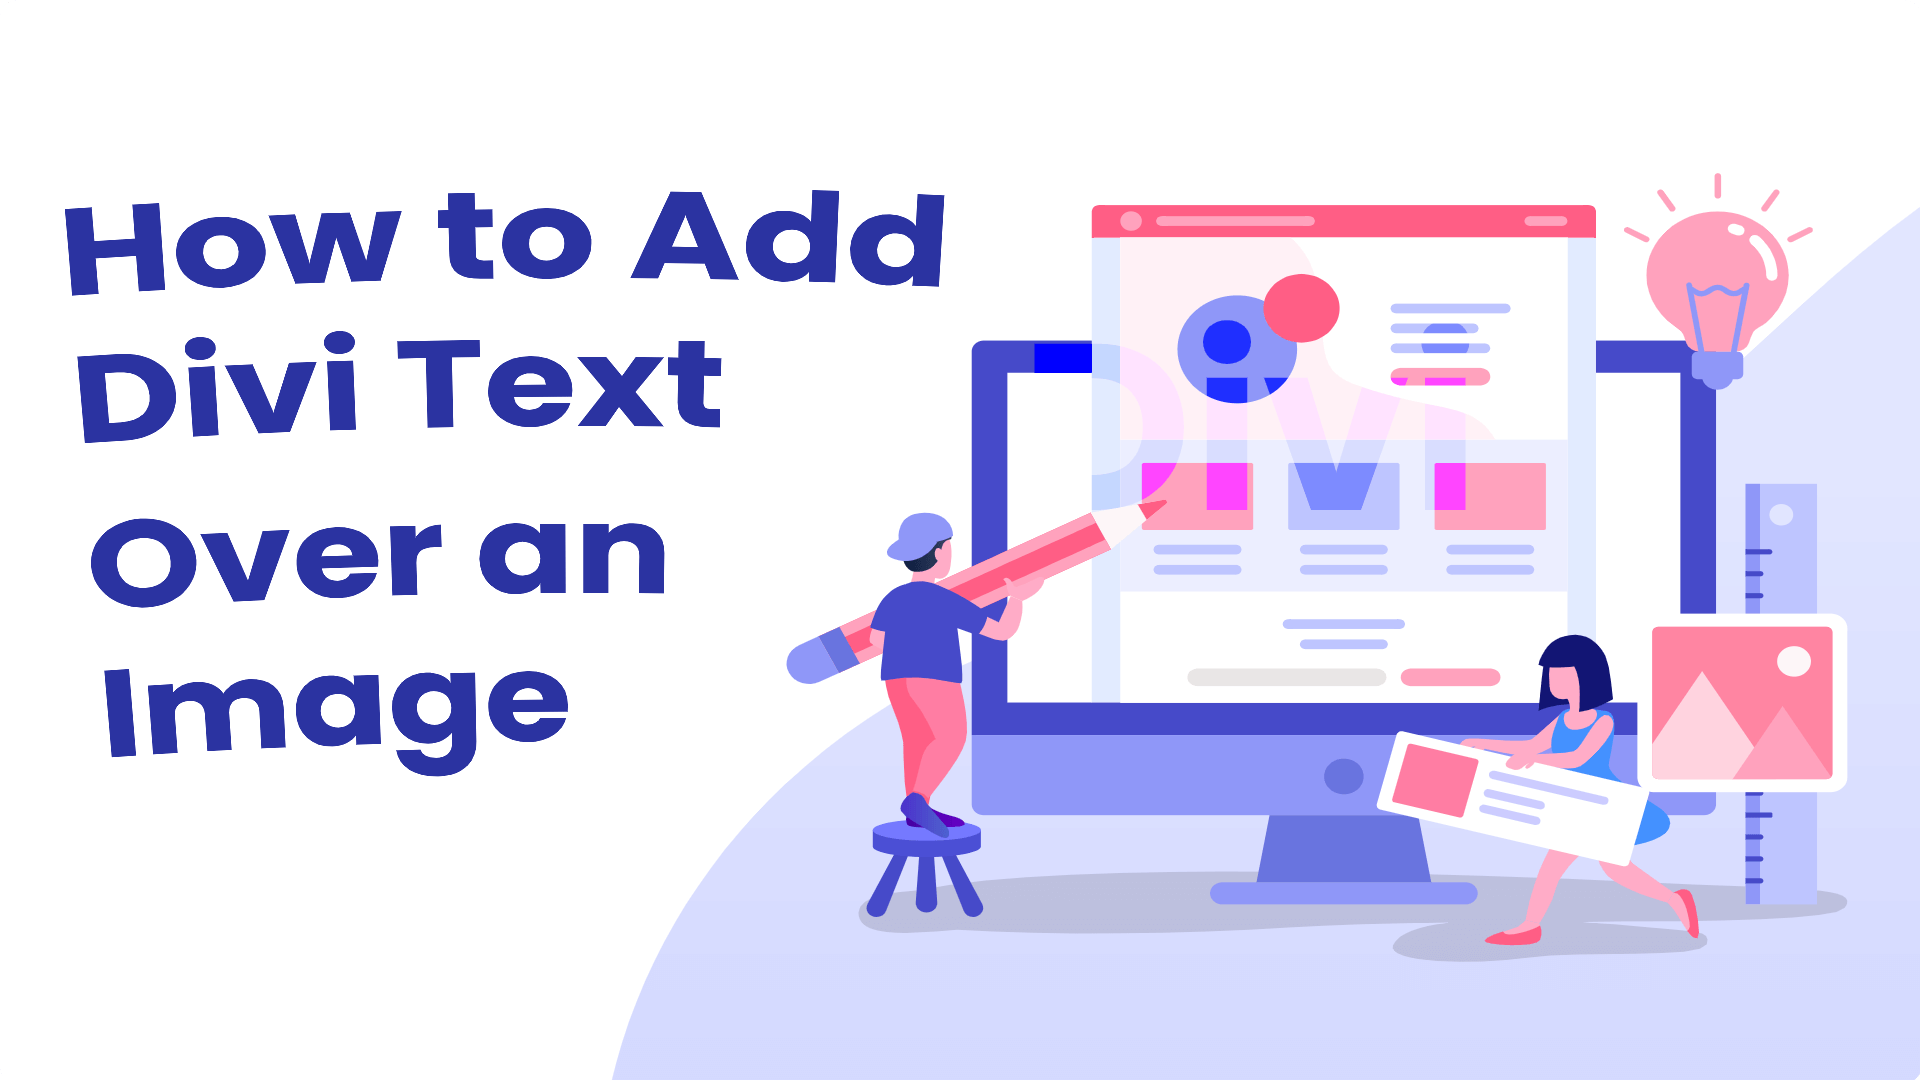 Divi text over an image